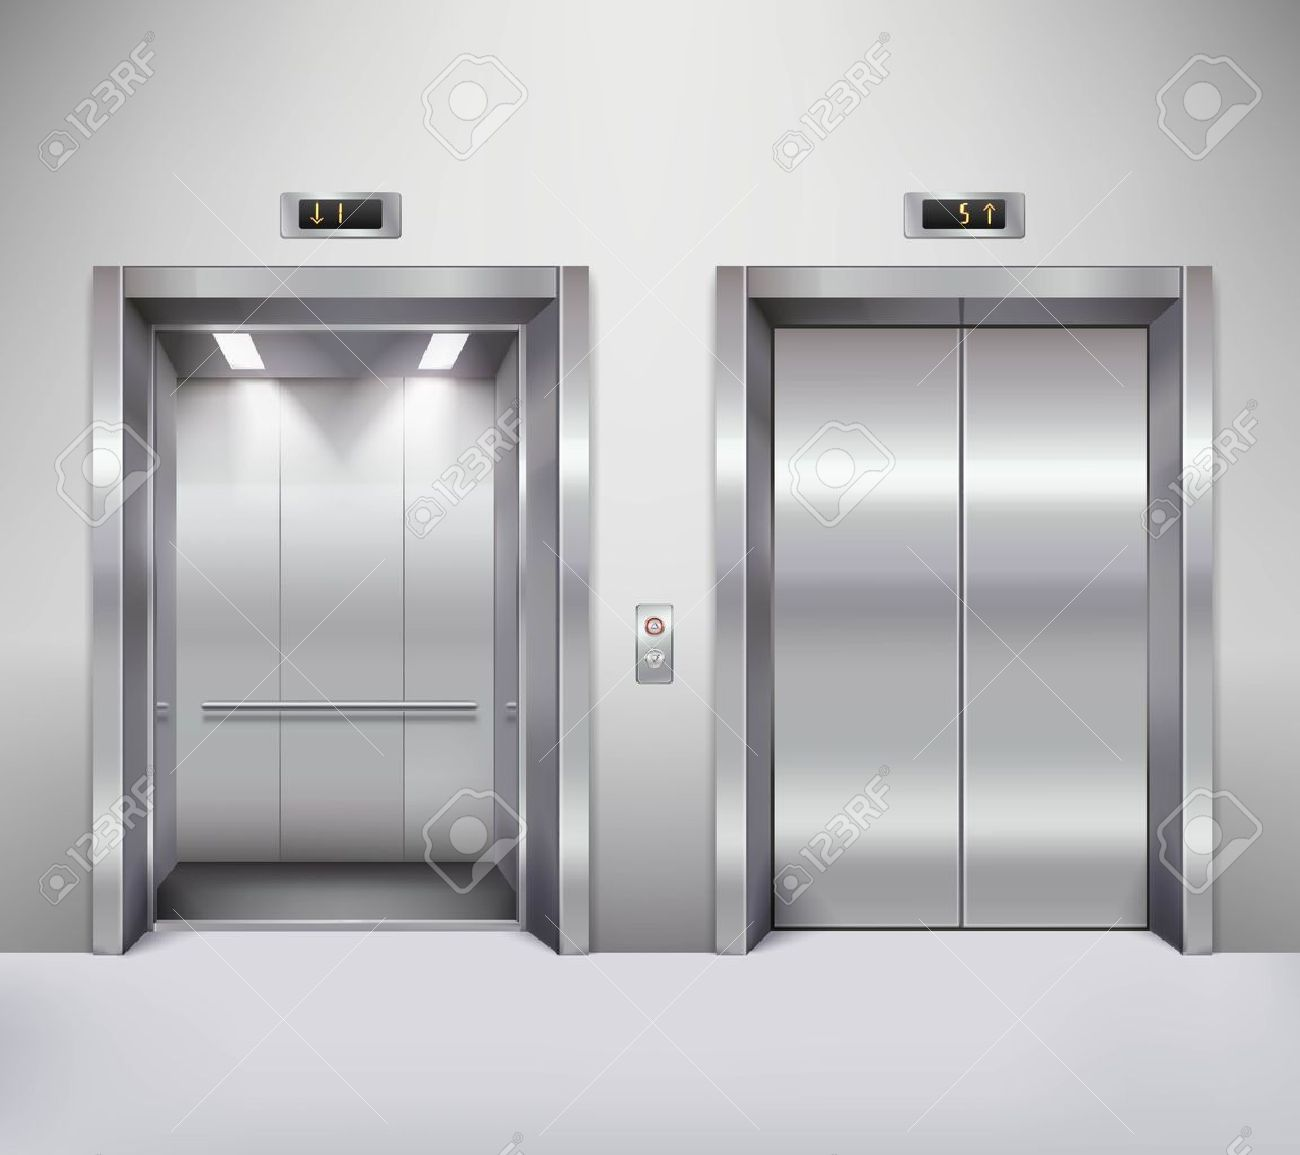 Open And Closed Chrome Metal Office Building Elevator Doors ...